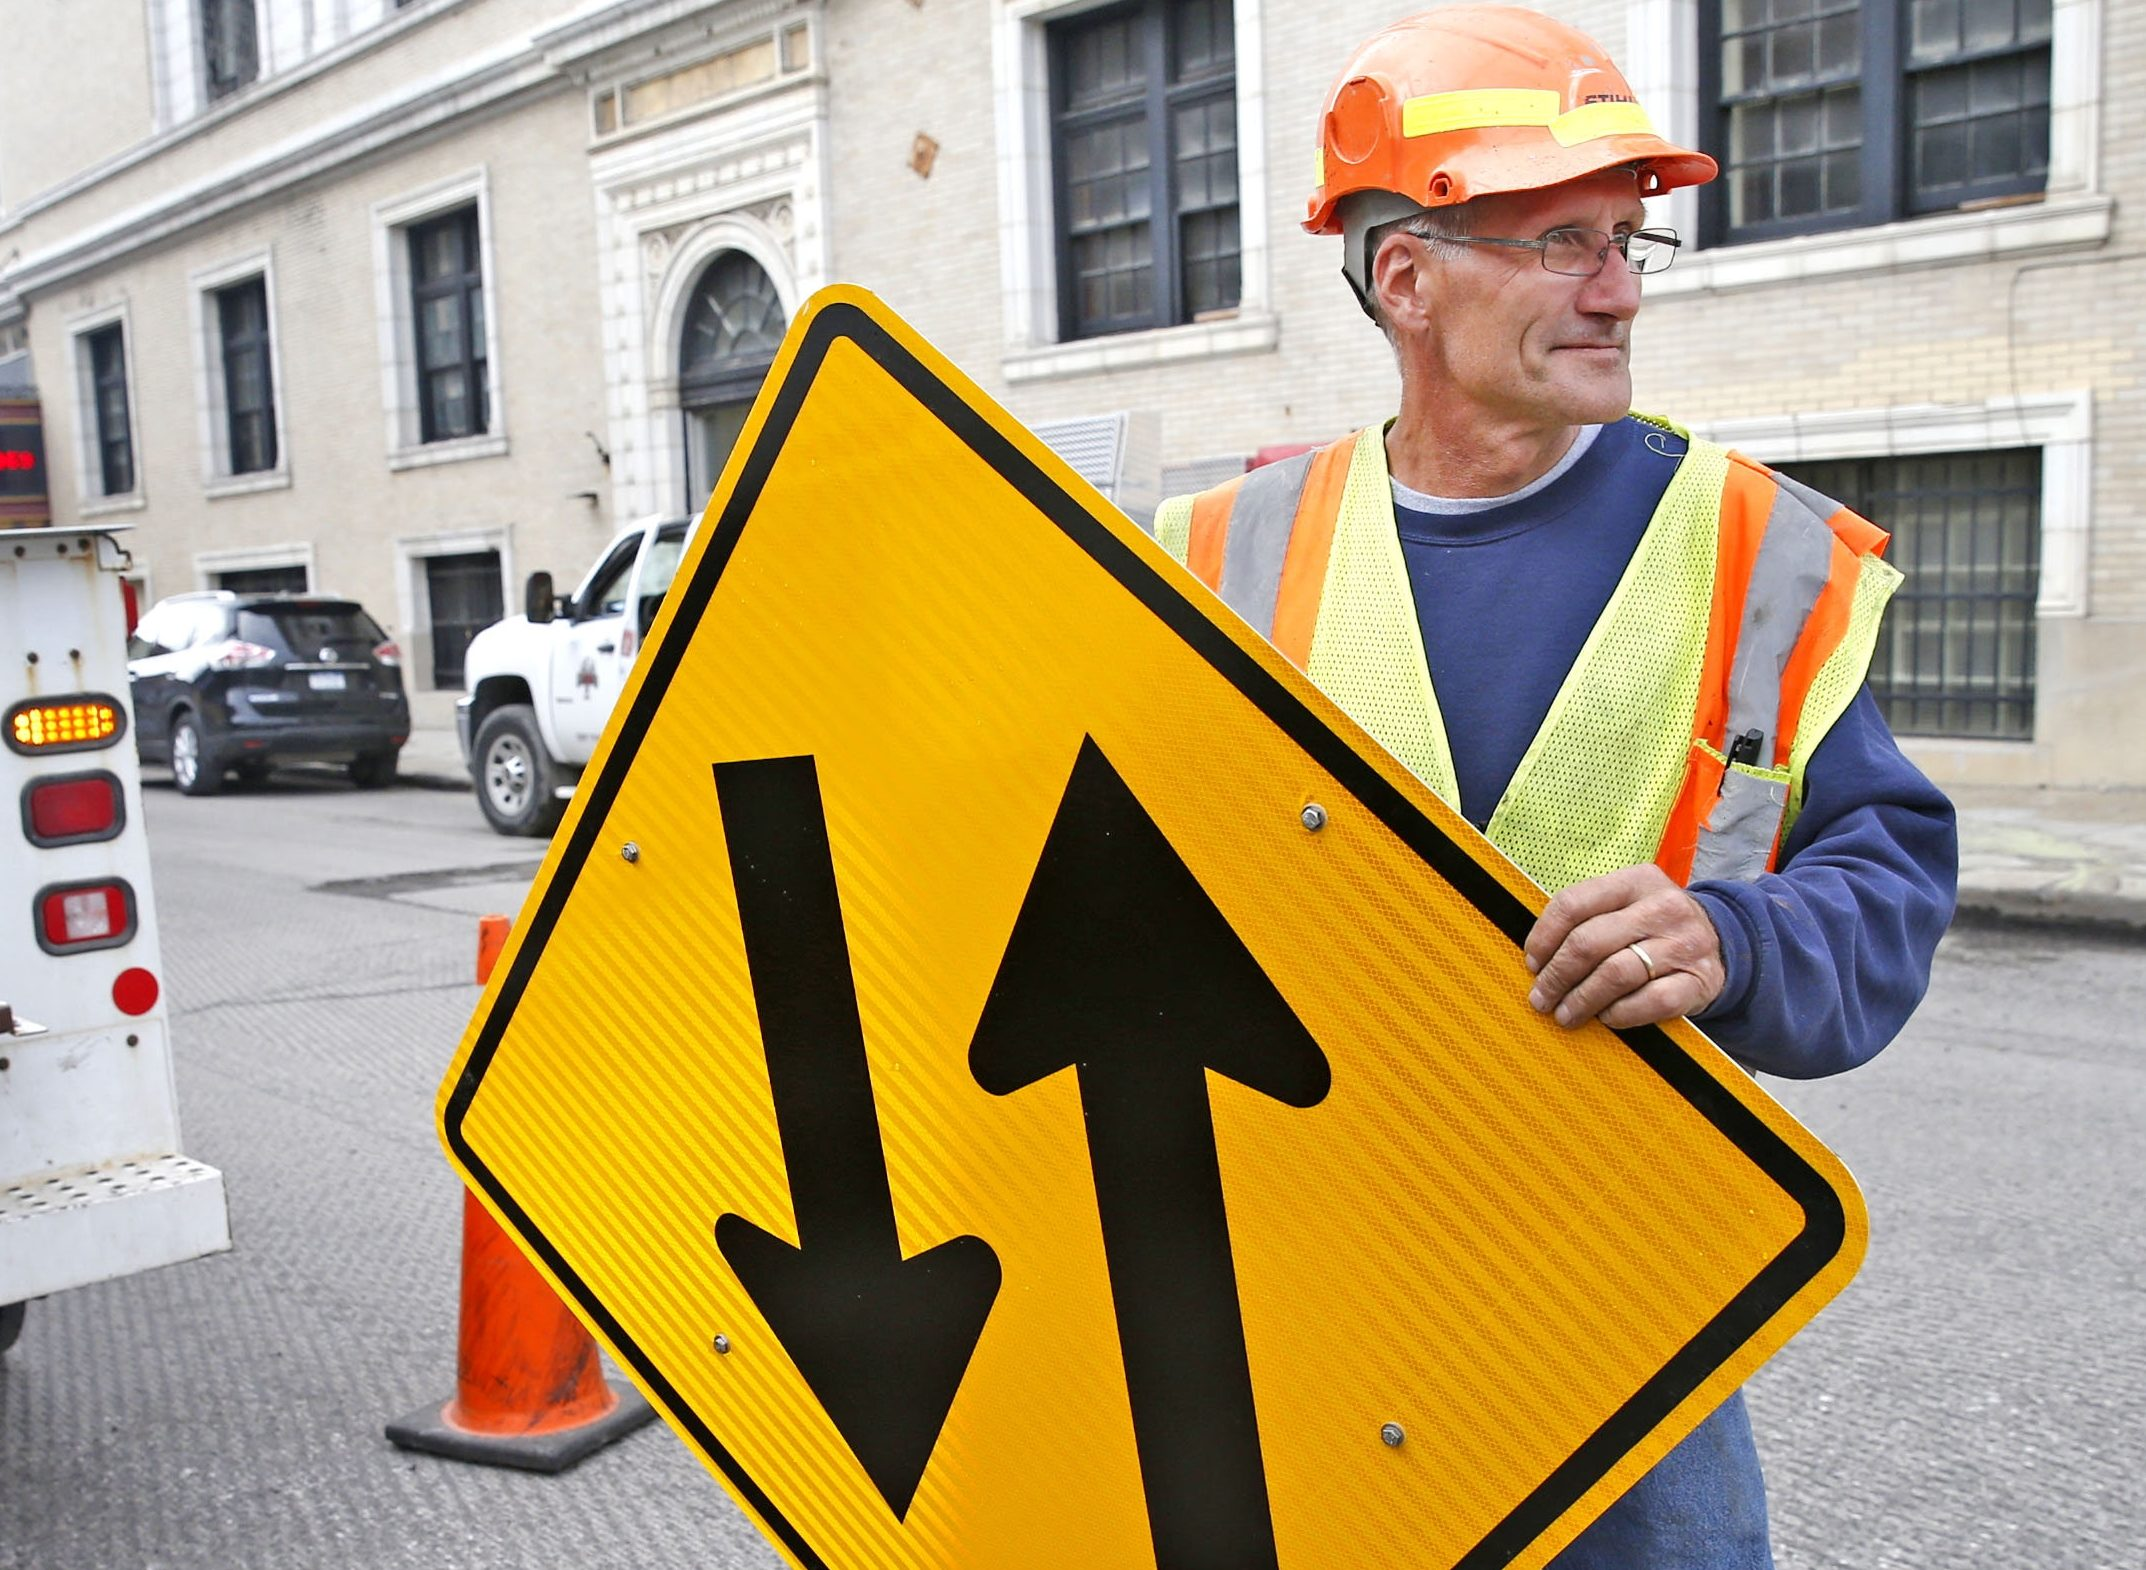 Ken Thomas, a construction worker for Concrete Applied Technologies Corp. of Alden, prepares for installation of a new two-way sign on Pearl Street in downtown Buffalo. On Tuesday, crews will start final paving of one-mile stretch from West Tupper to Lower Terrace.